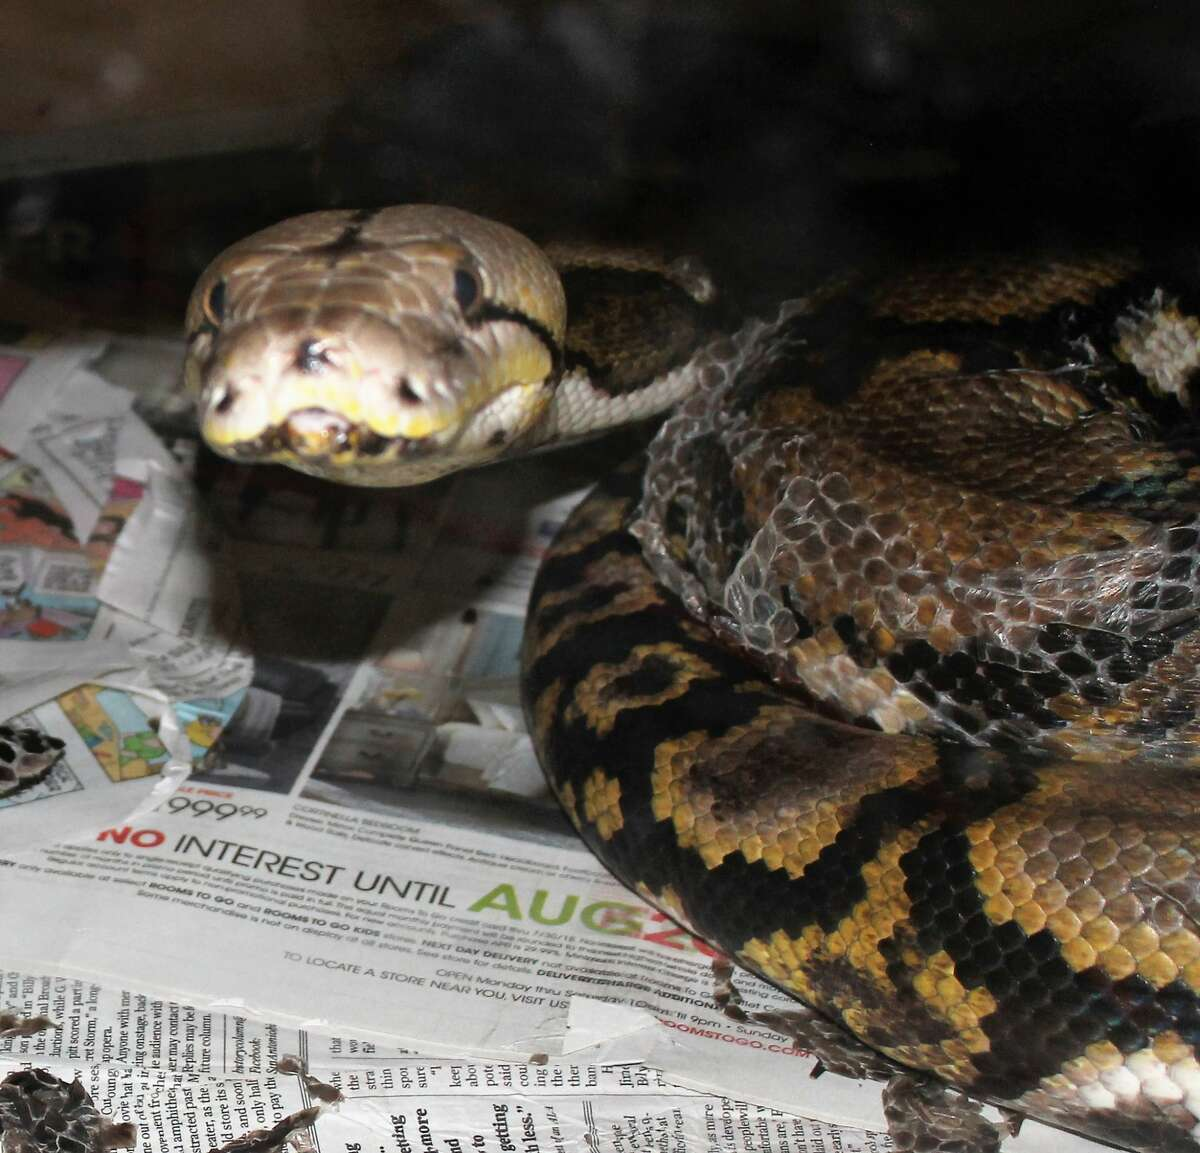 Animal Care Services seized 136 snakes and more than 400 rodents from a South Side home on Wednesday, Sept. 5, 2018. Nearly all of the rats and mice were picked upby Central Texas Rat Rescue, Dallas/Ft Worth Rat Rescue and Our Little Rat Rescue of Oklahoma to be taken to new homes, where they will be welcomed as pets.